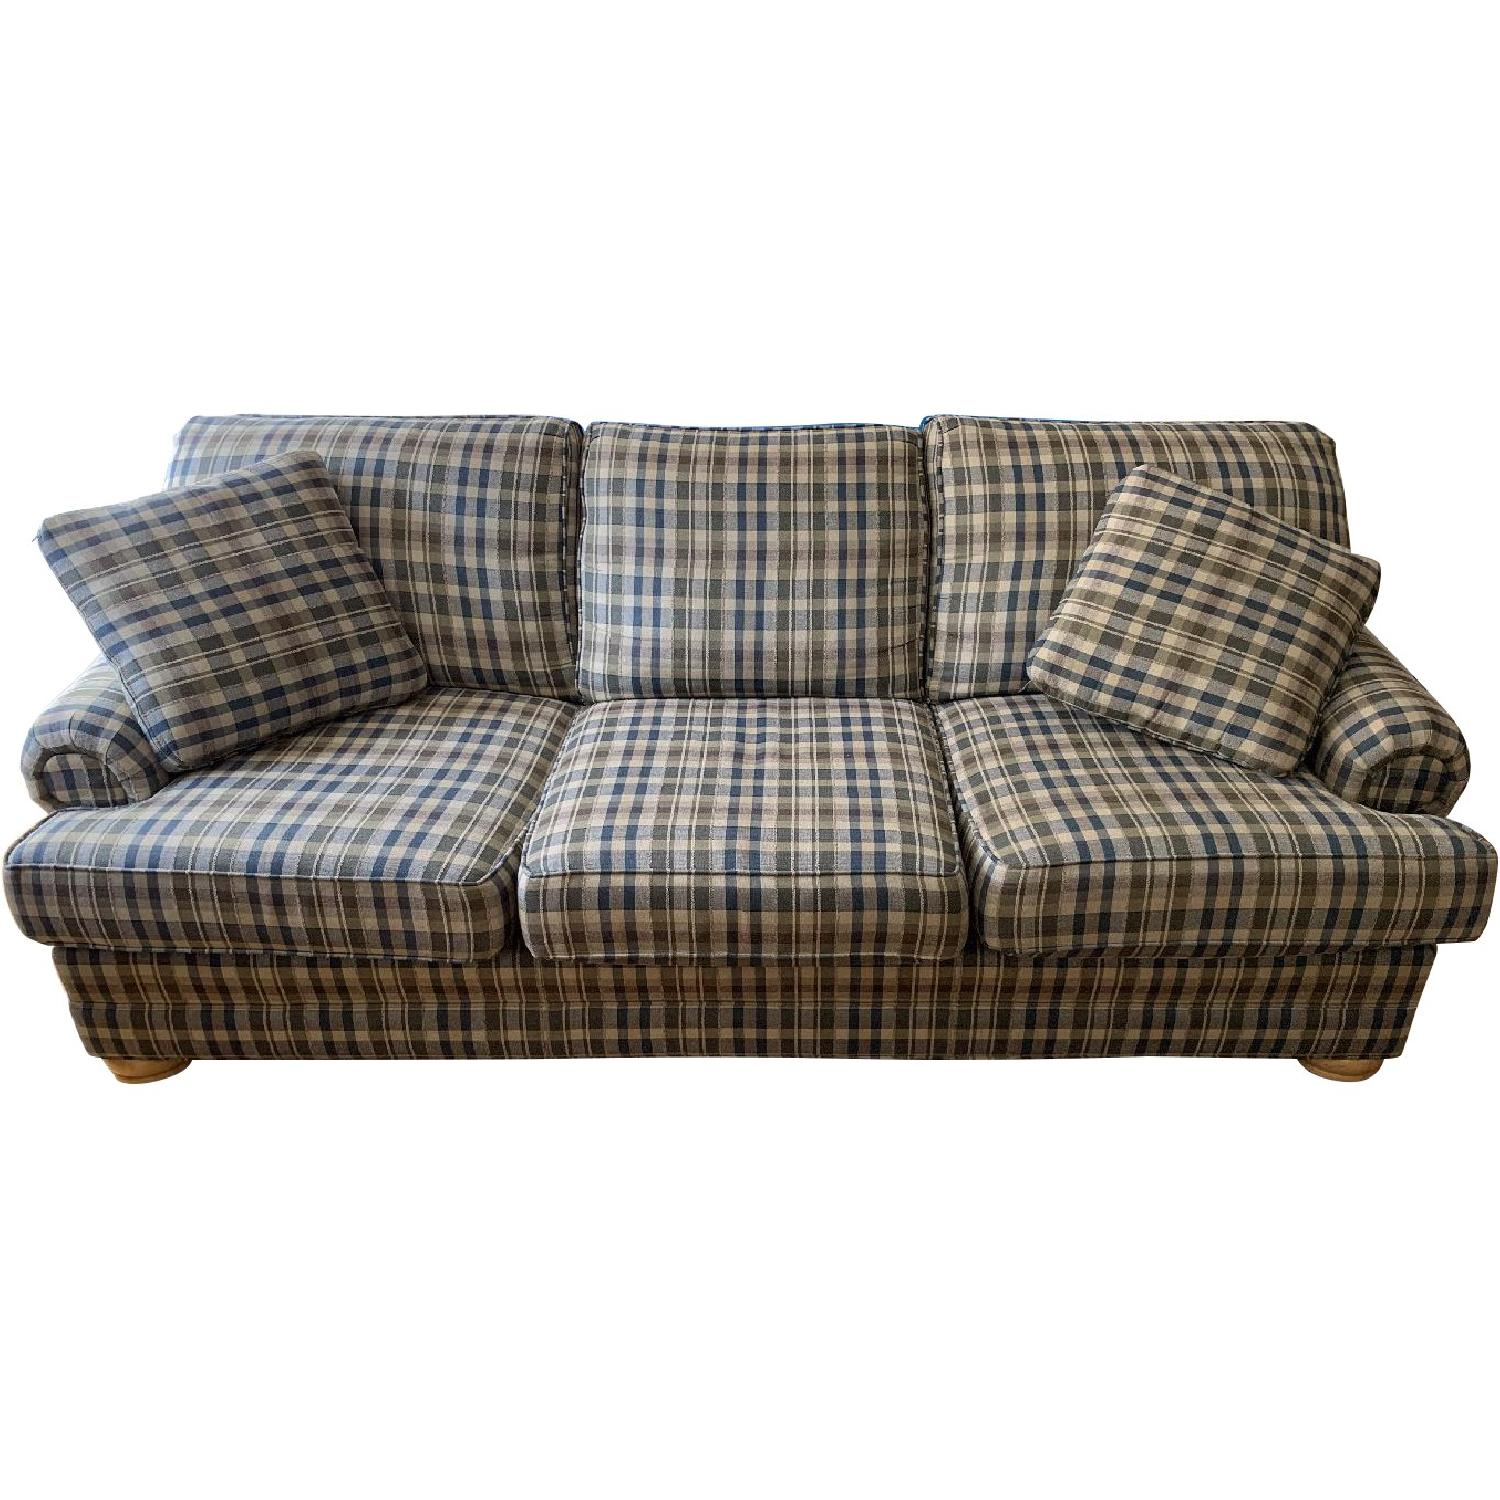 Plaid Upholstered 3 Seater Sofa